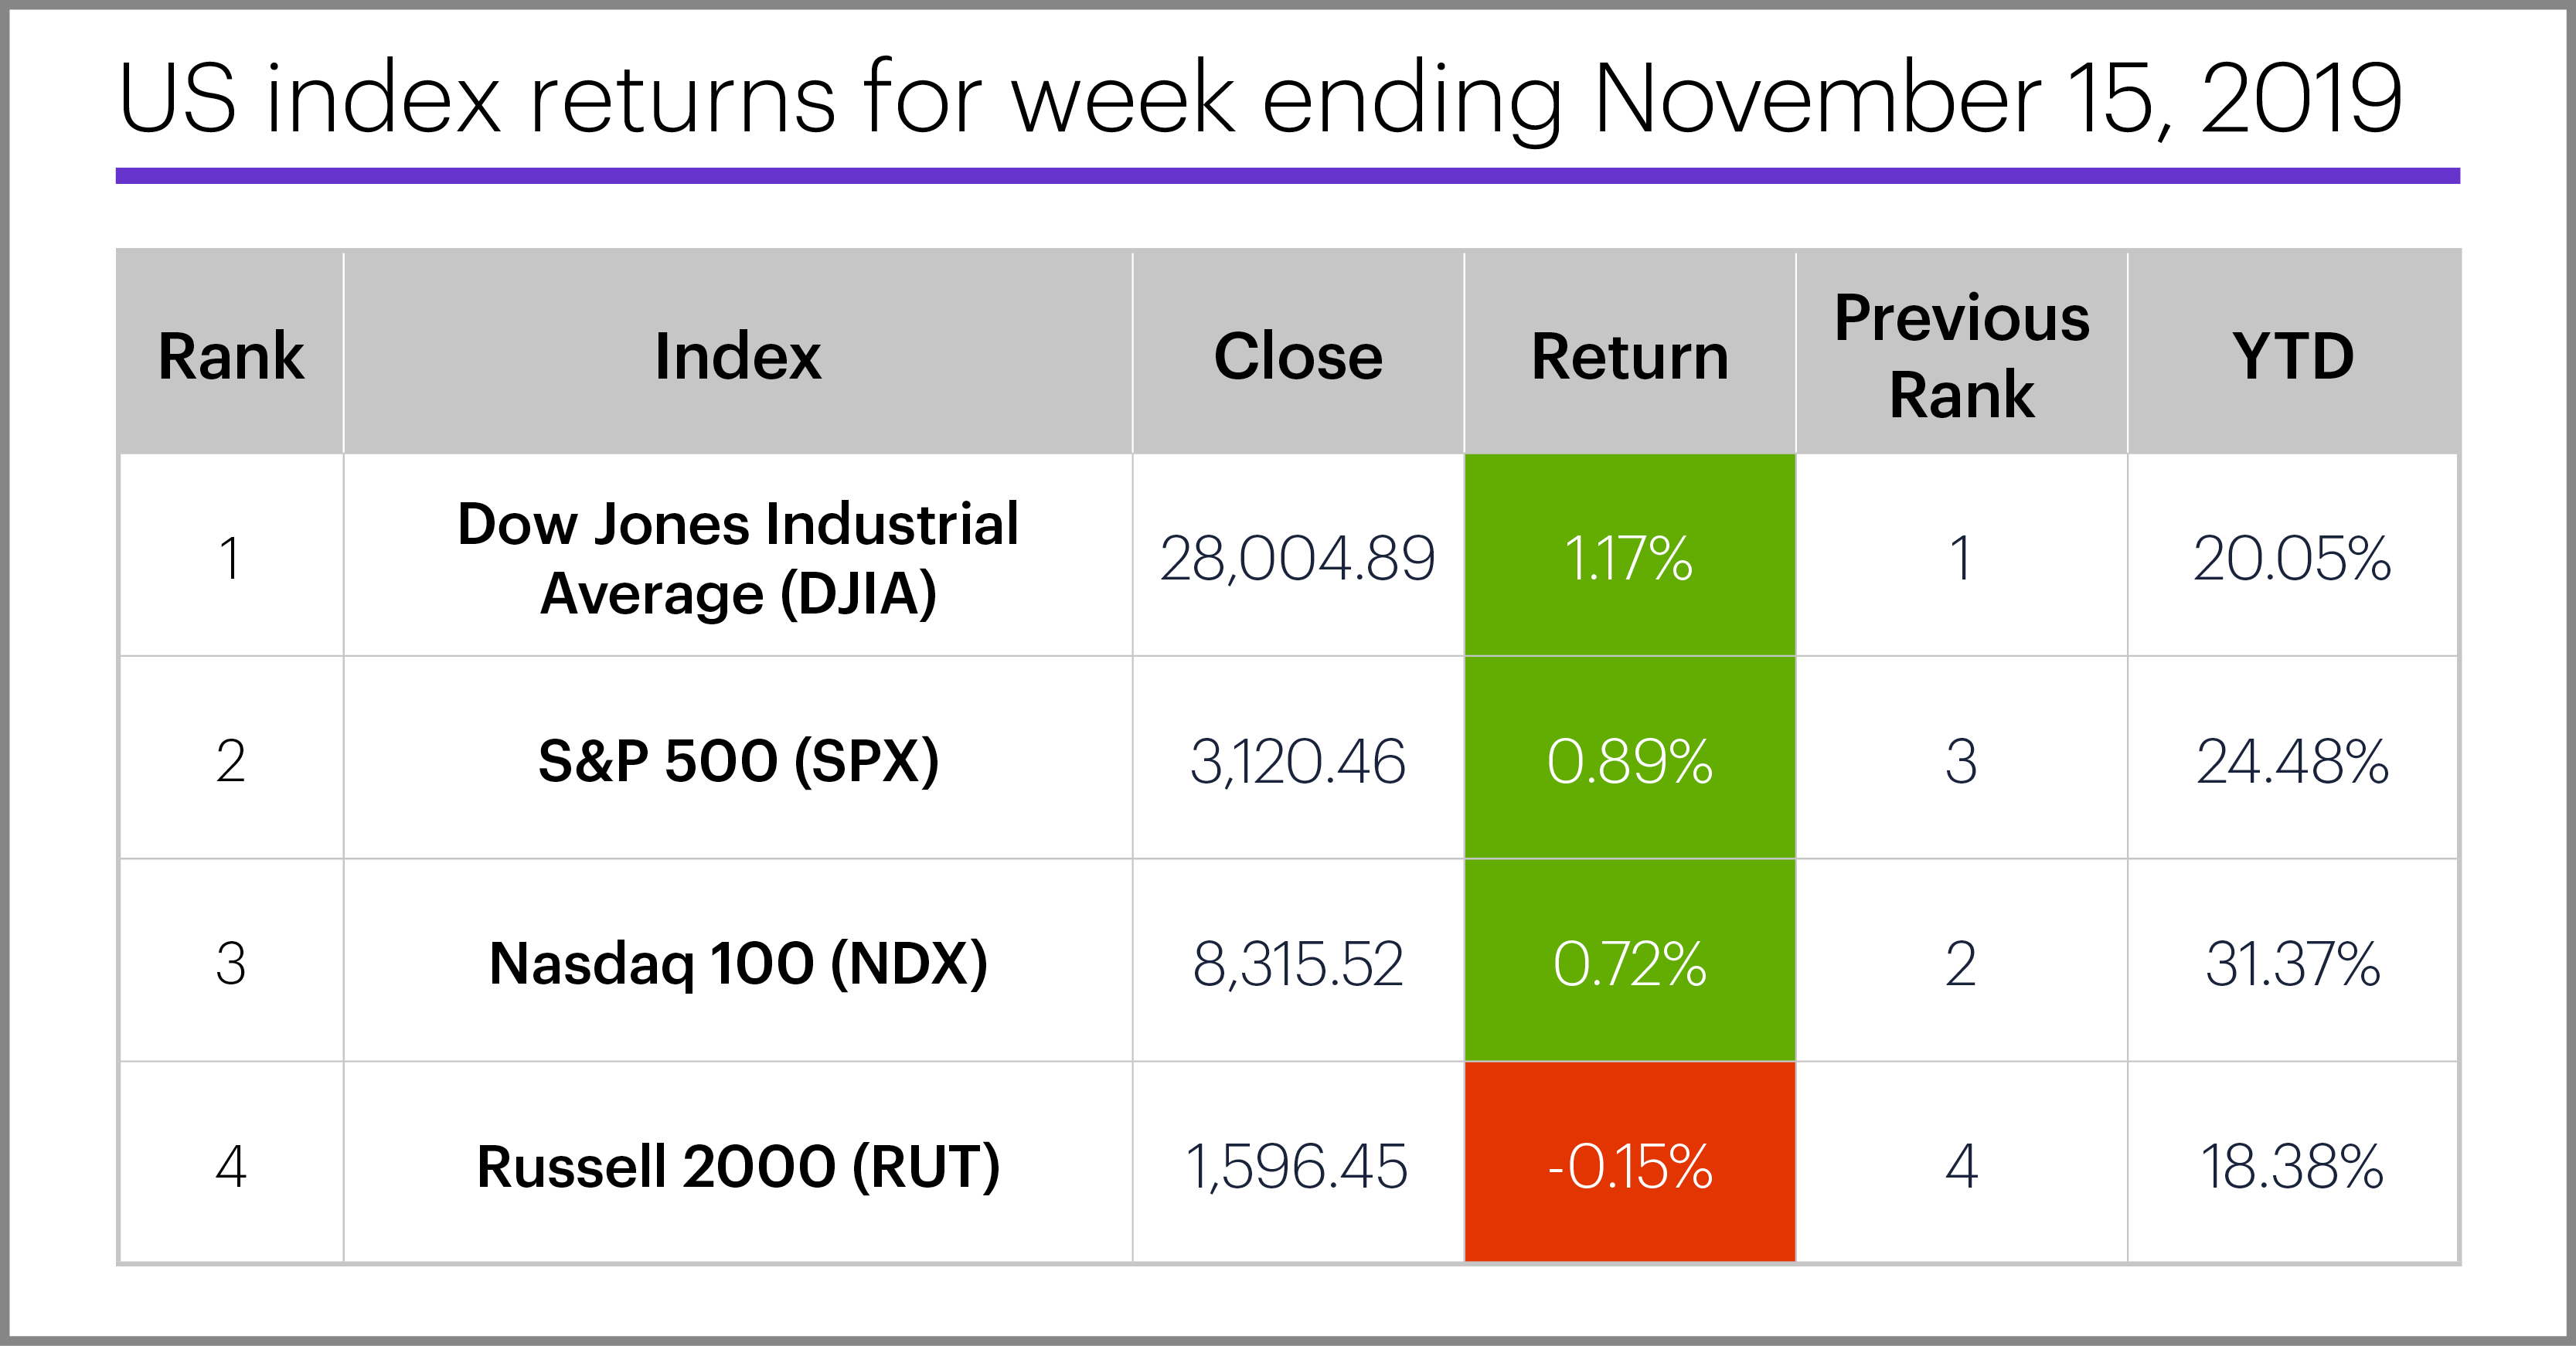 US stock index performance table for week ending 11/15/19. S&P 500 (SPX), Nasdaq 100 (NDX), Russell 2000 (RUT), Dow Jones Industrial Average (DJIA).